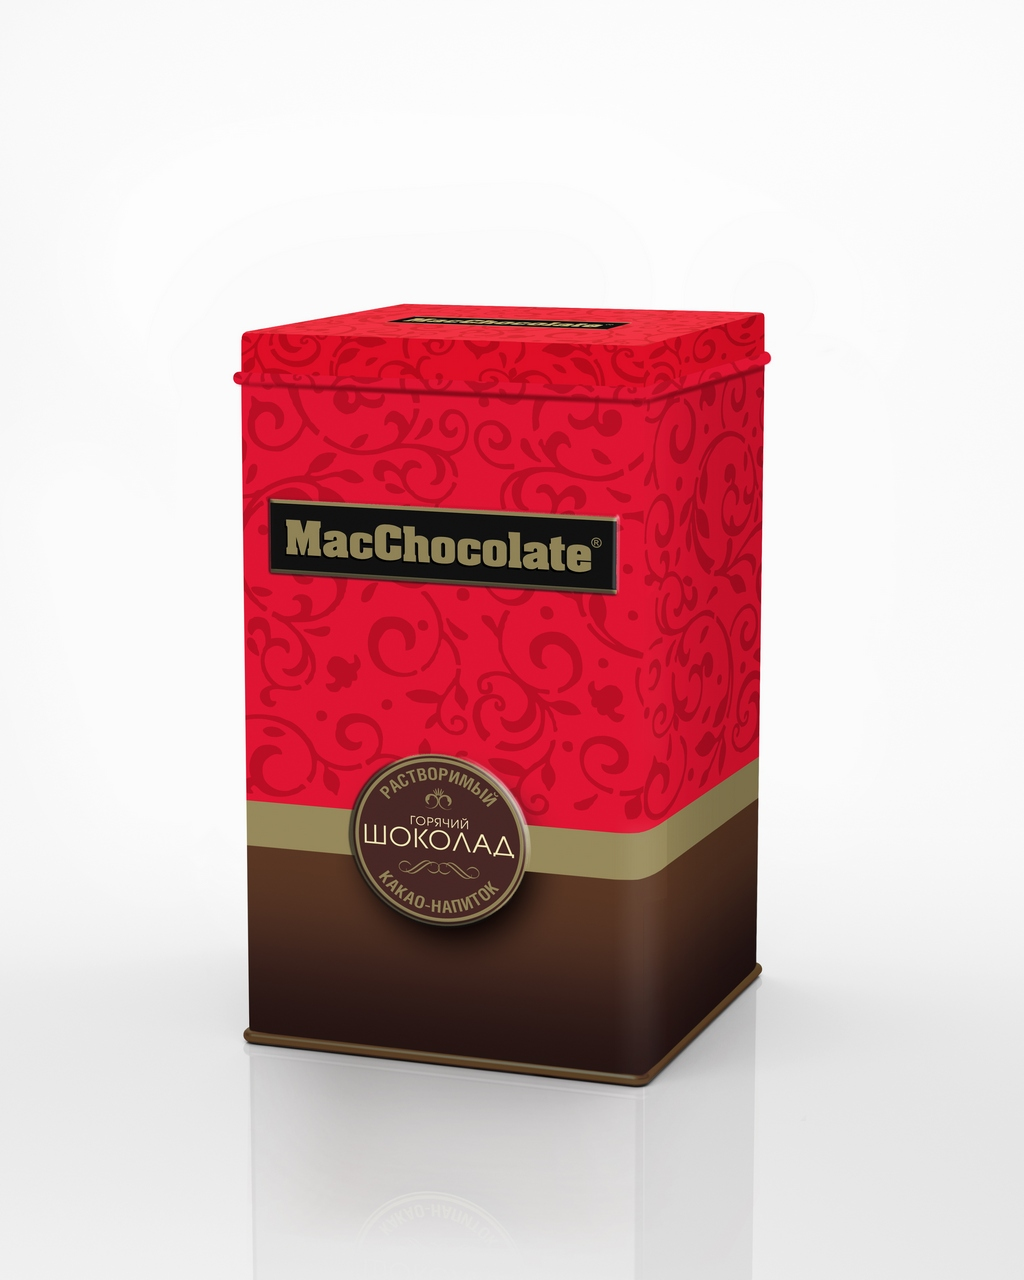 MacChocolate in a holiday tin!